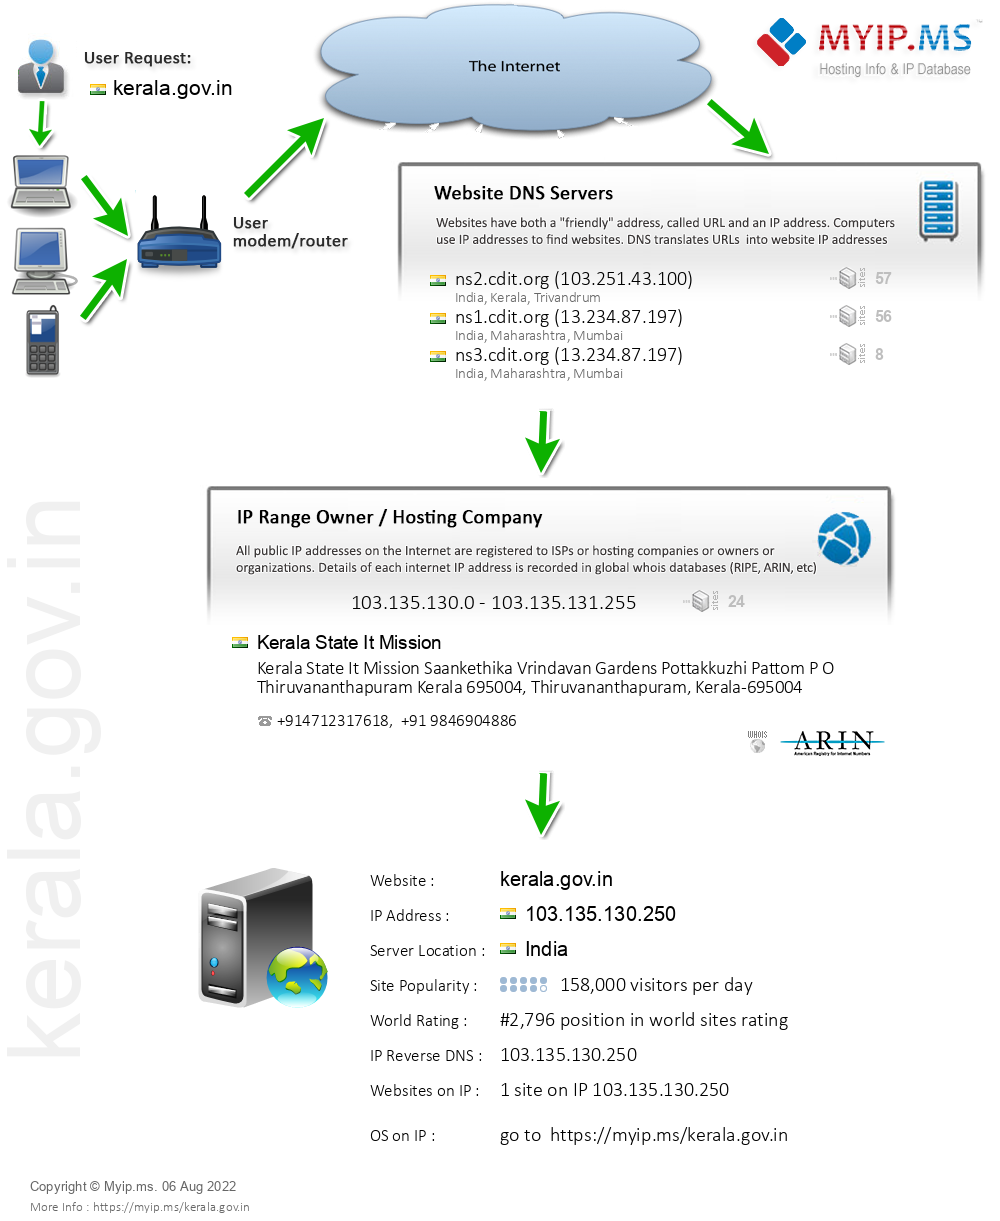 Kerala.gov.in - Website Hosting Visual IP Diagram